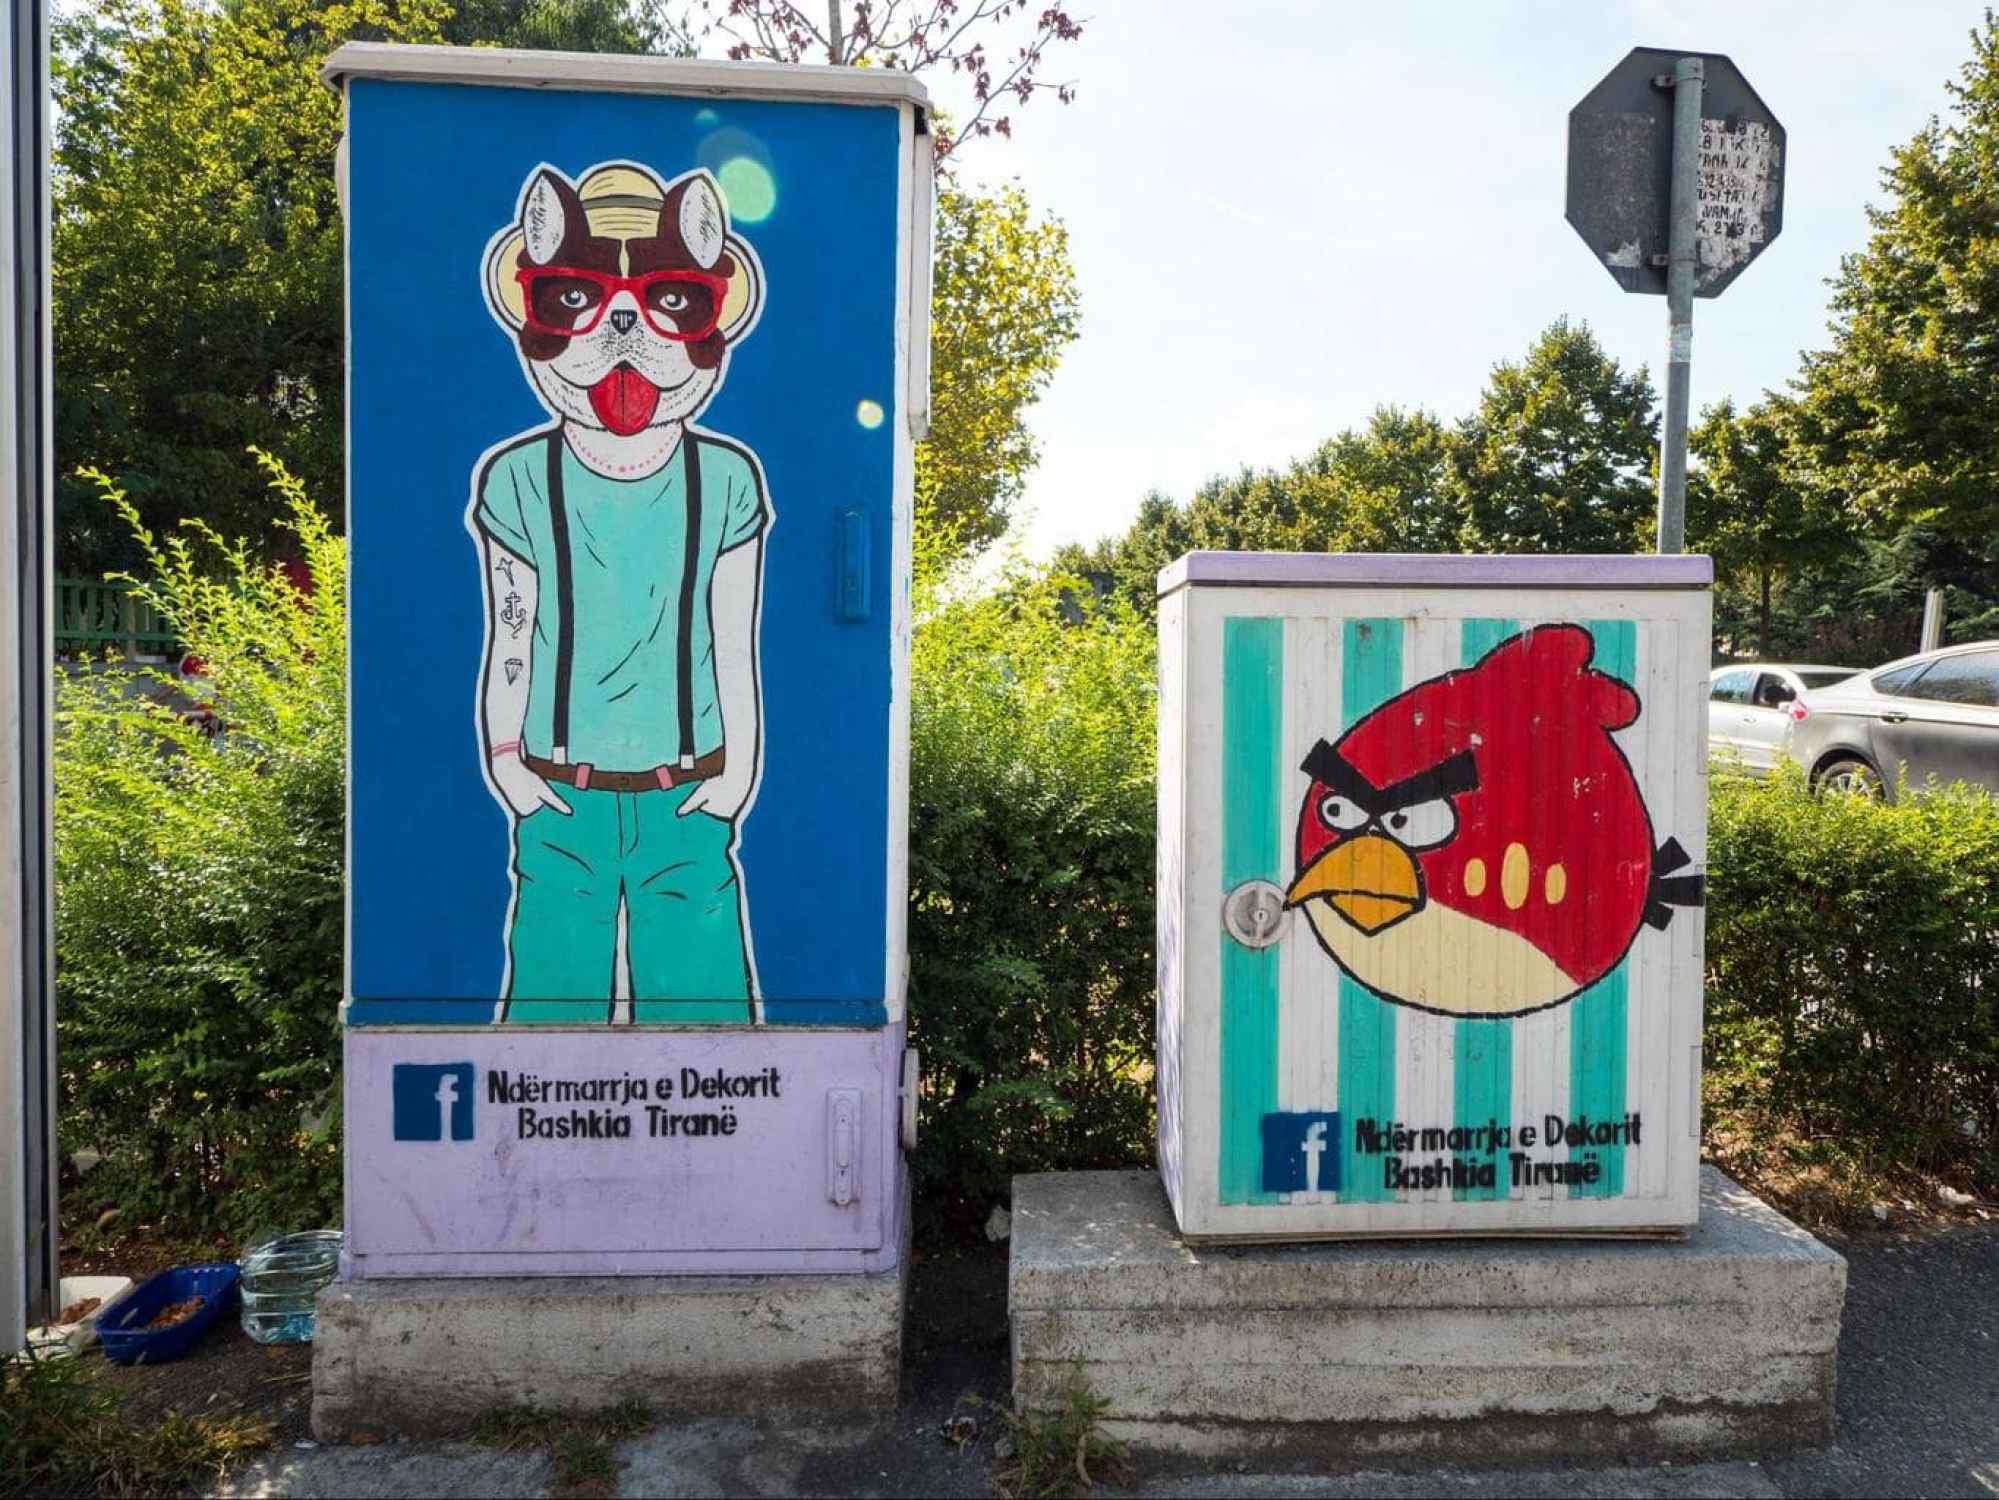 Electric box street art in Tirana